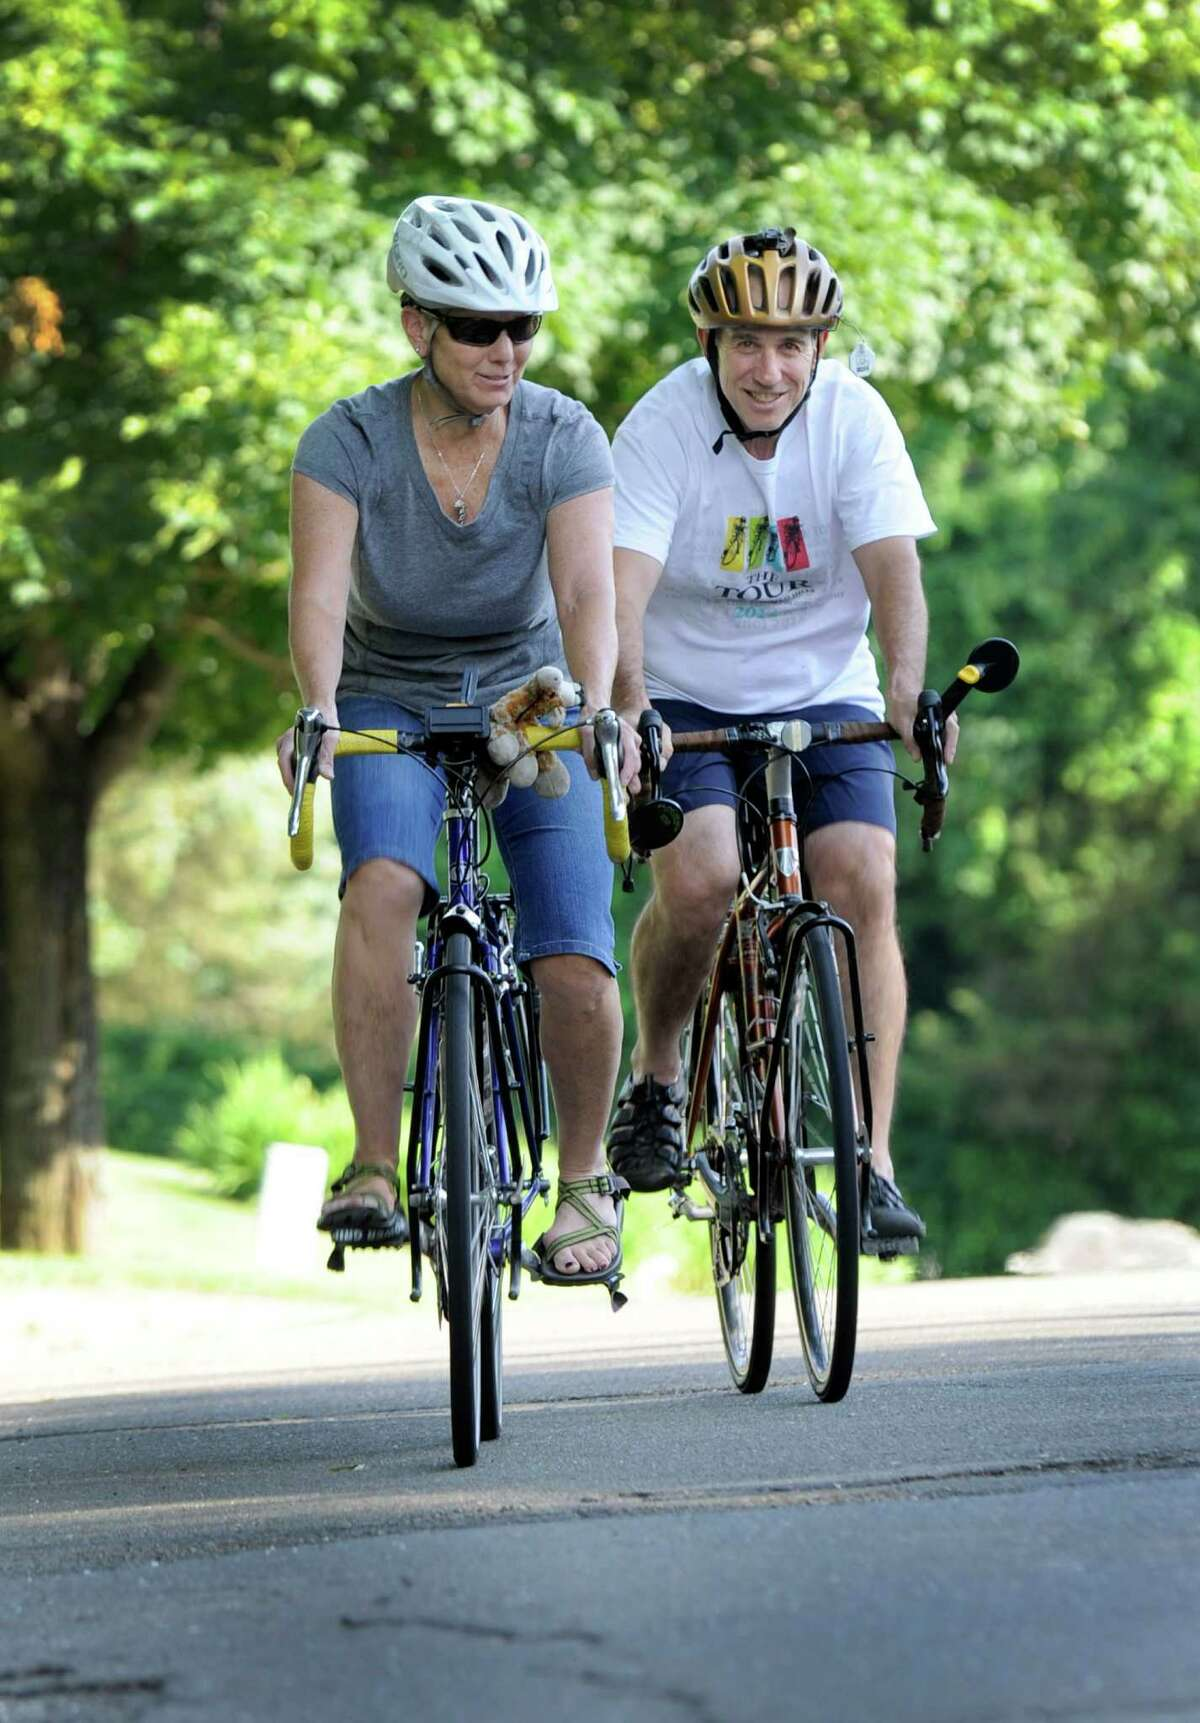 Marti and Dave Fine ride their bicycles in their Danbury neighborhood Thursday, June 25.